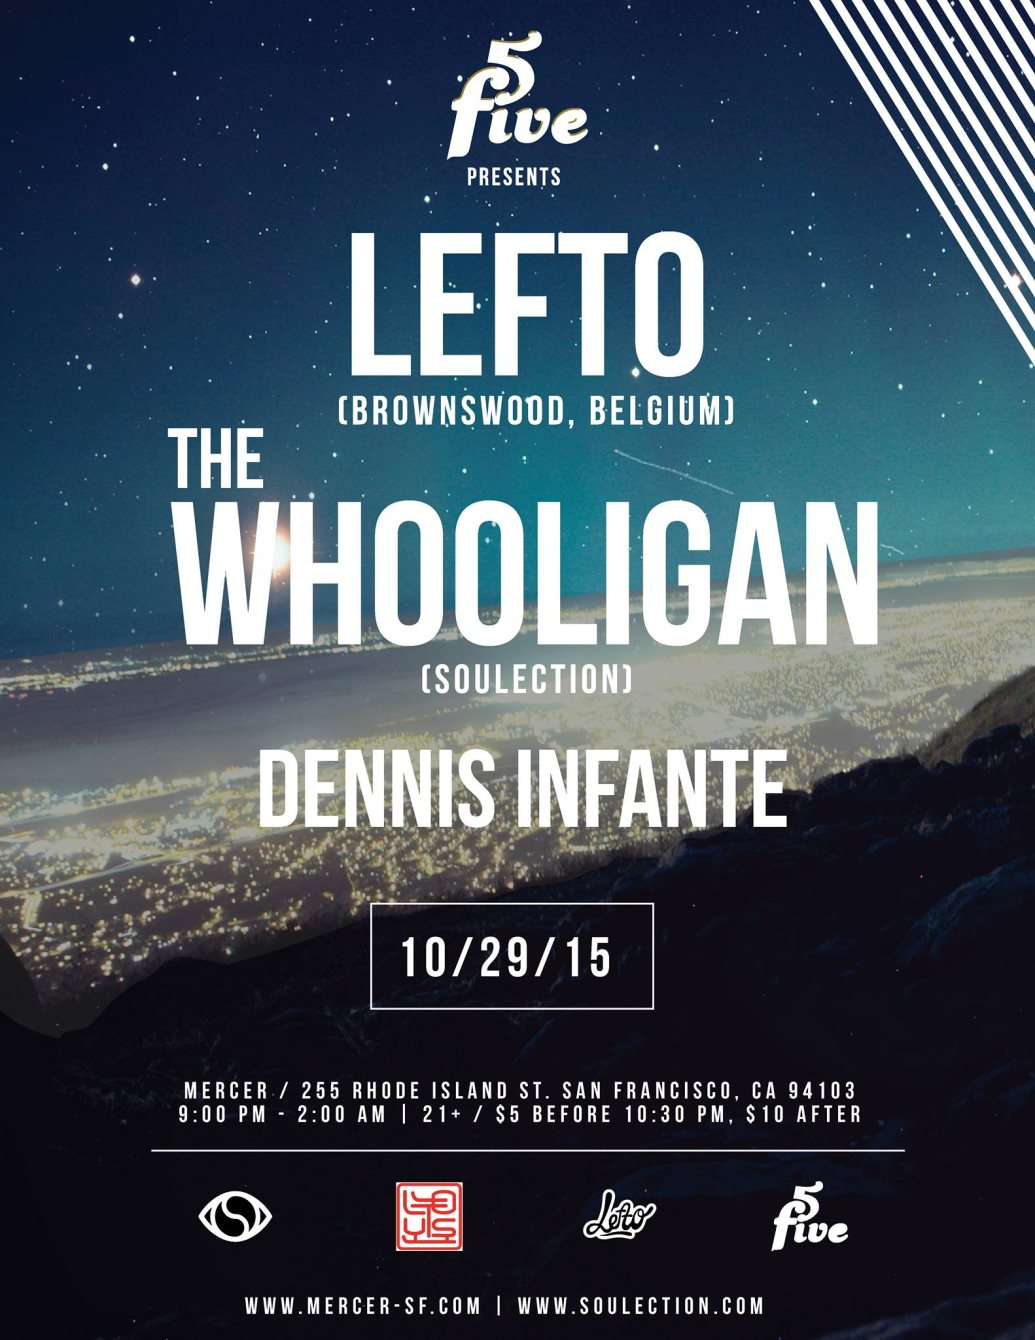 5five presents Lefto & The Whooligan - Flyer front